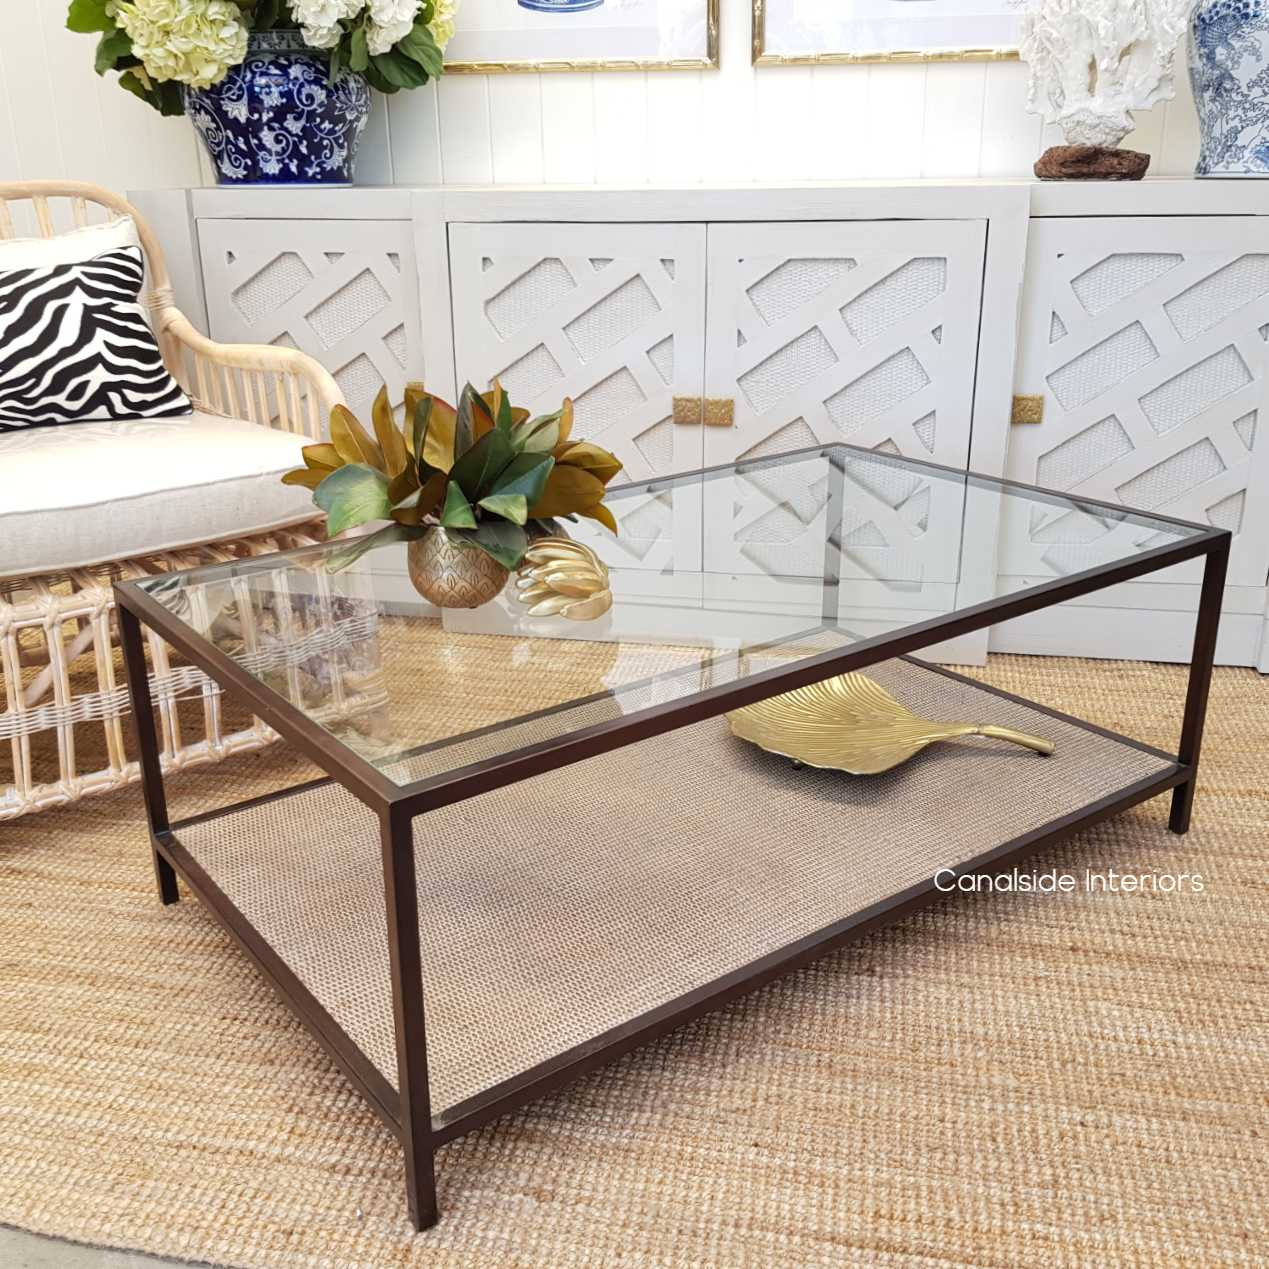 Knox Rattan Plantation Rectangular Coffee Table TABLES, Coffee Tables, LIVING Room, LIVING Coffee & Side Tables, PLANTATION STYLE, island style, British Colonial